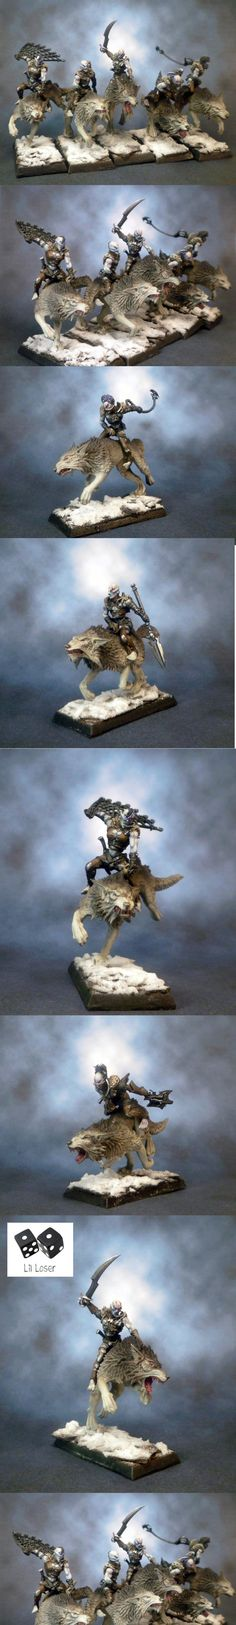 Dark Elves, Wolves, The Hounds of Naggarond; Converted Dark Riders